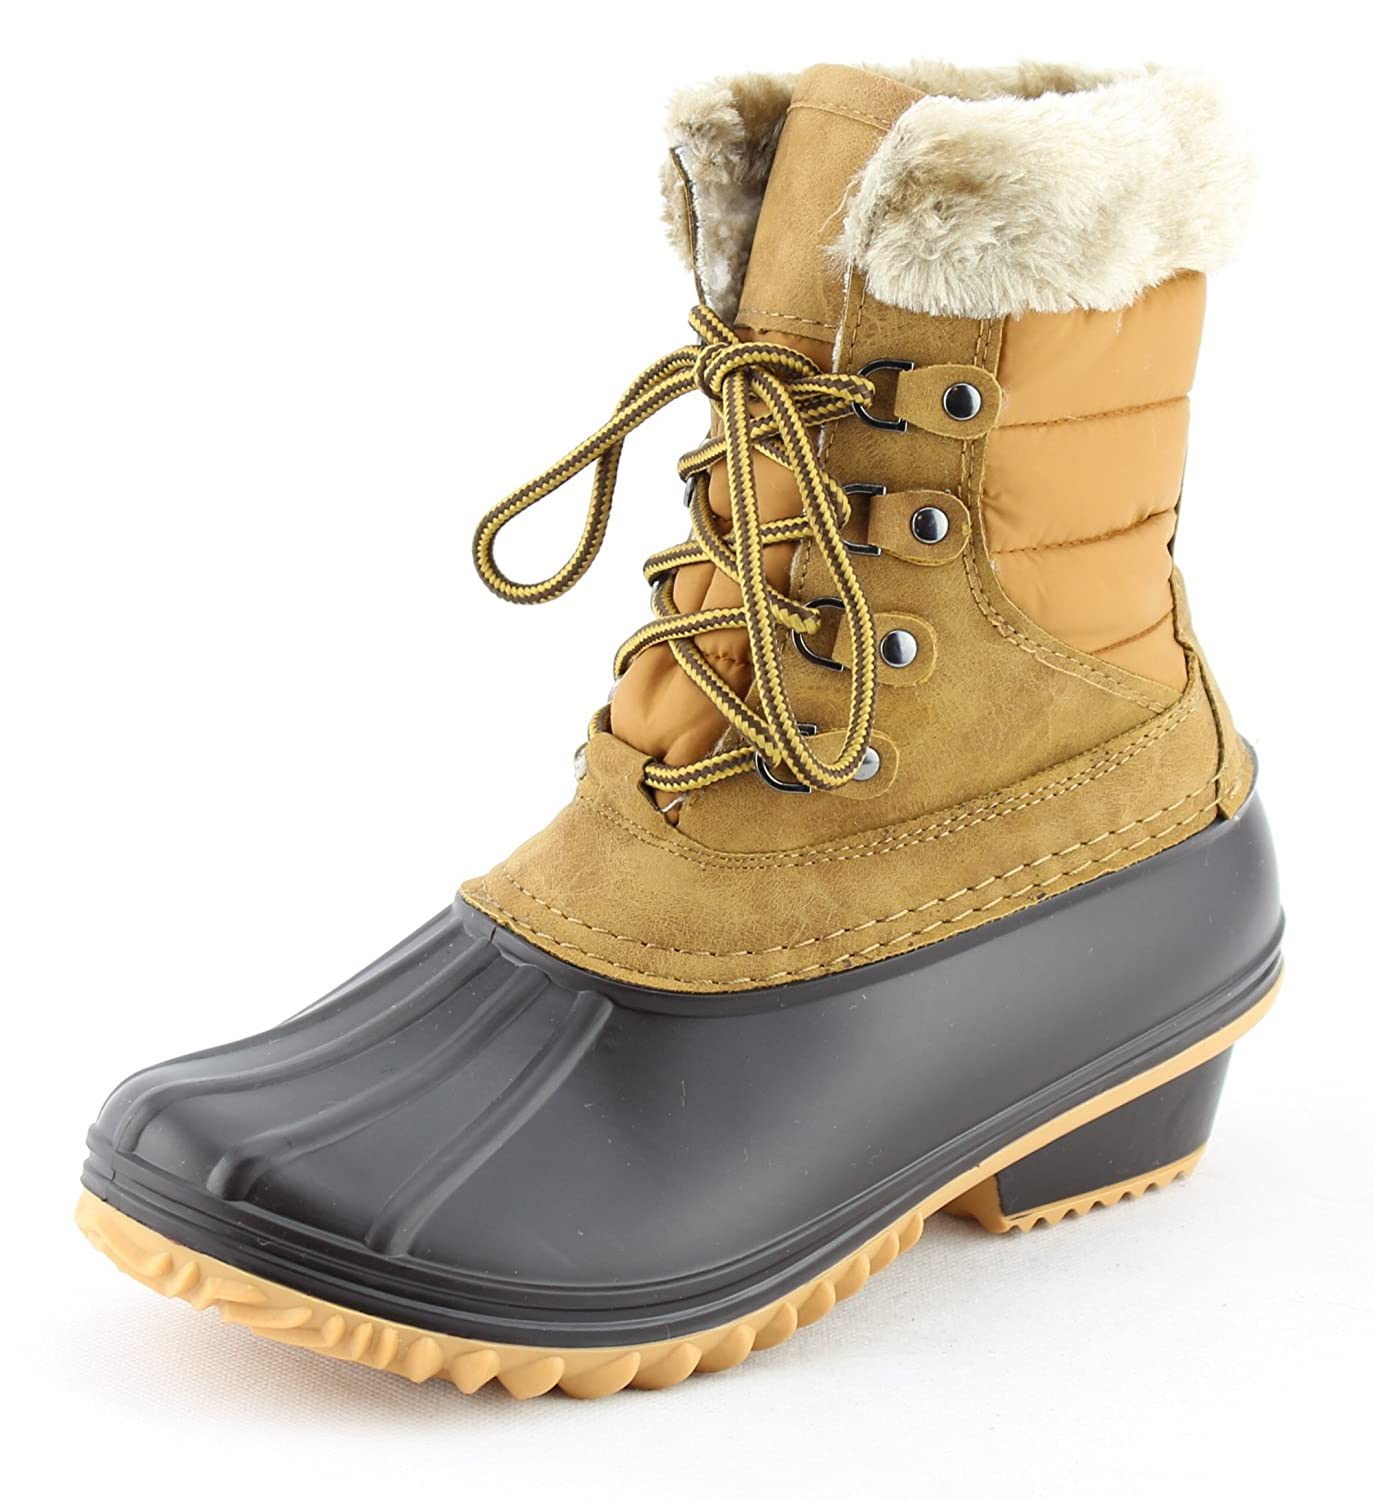 CALICO KIKI Women's Lace Up Warm Water Resistant Fur Padded Winter Snow Duck Boots B078KHSQDV 9 B(M) US|Tan